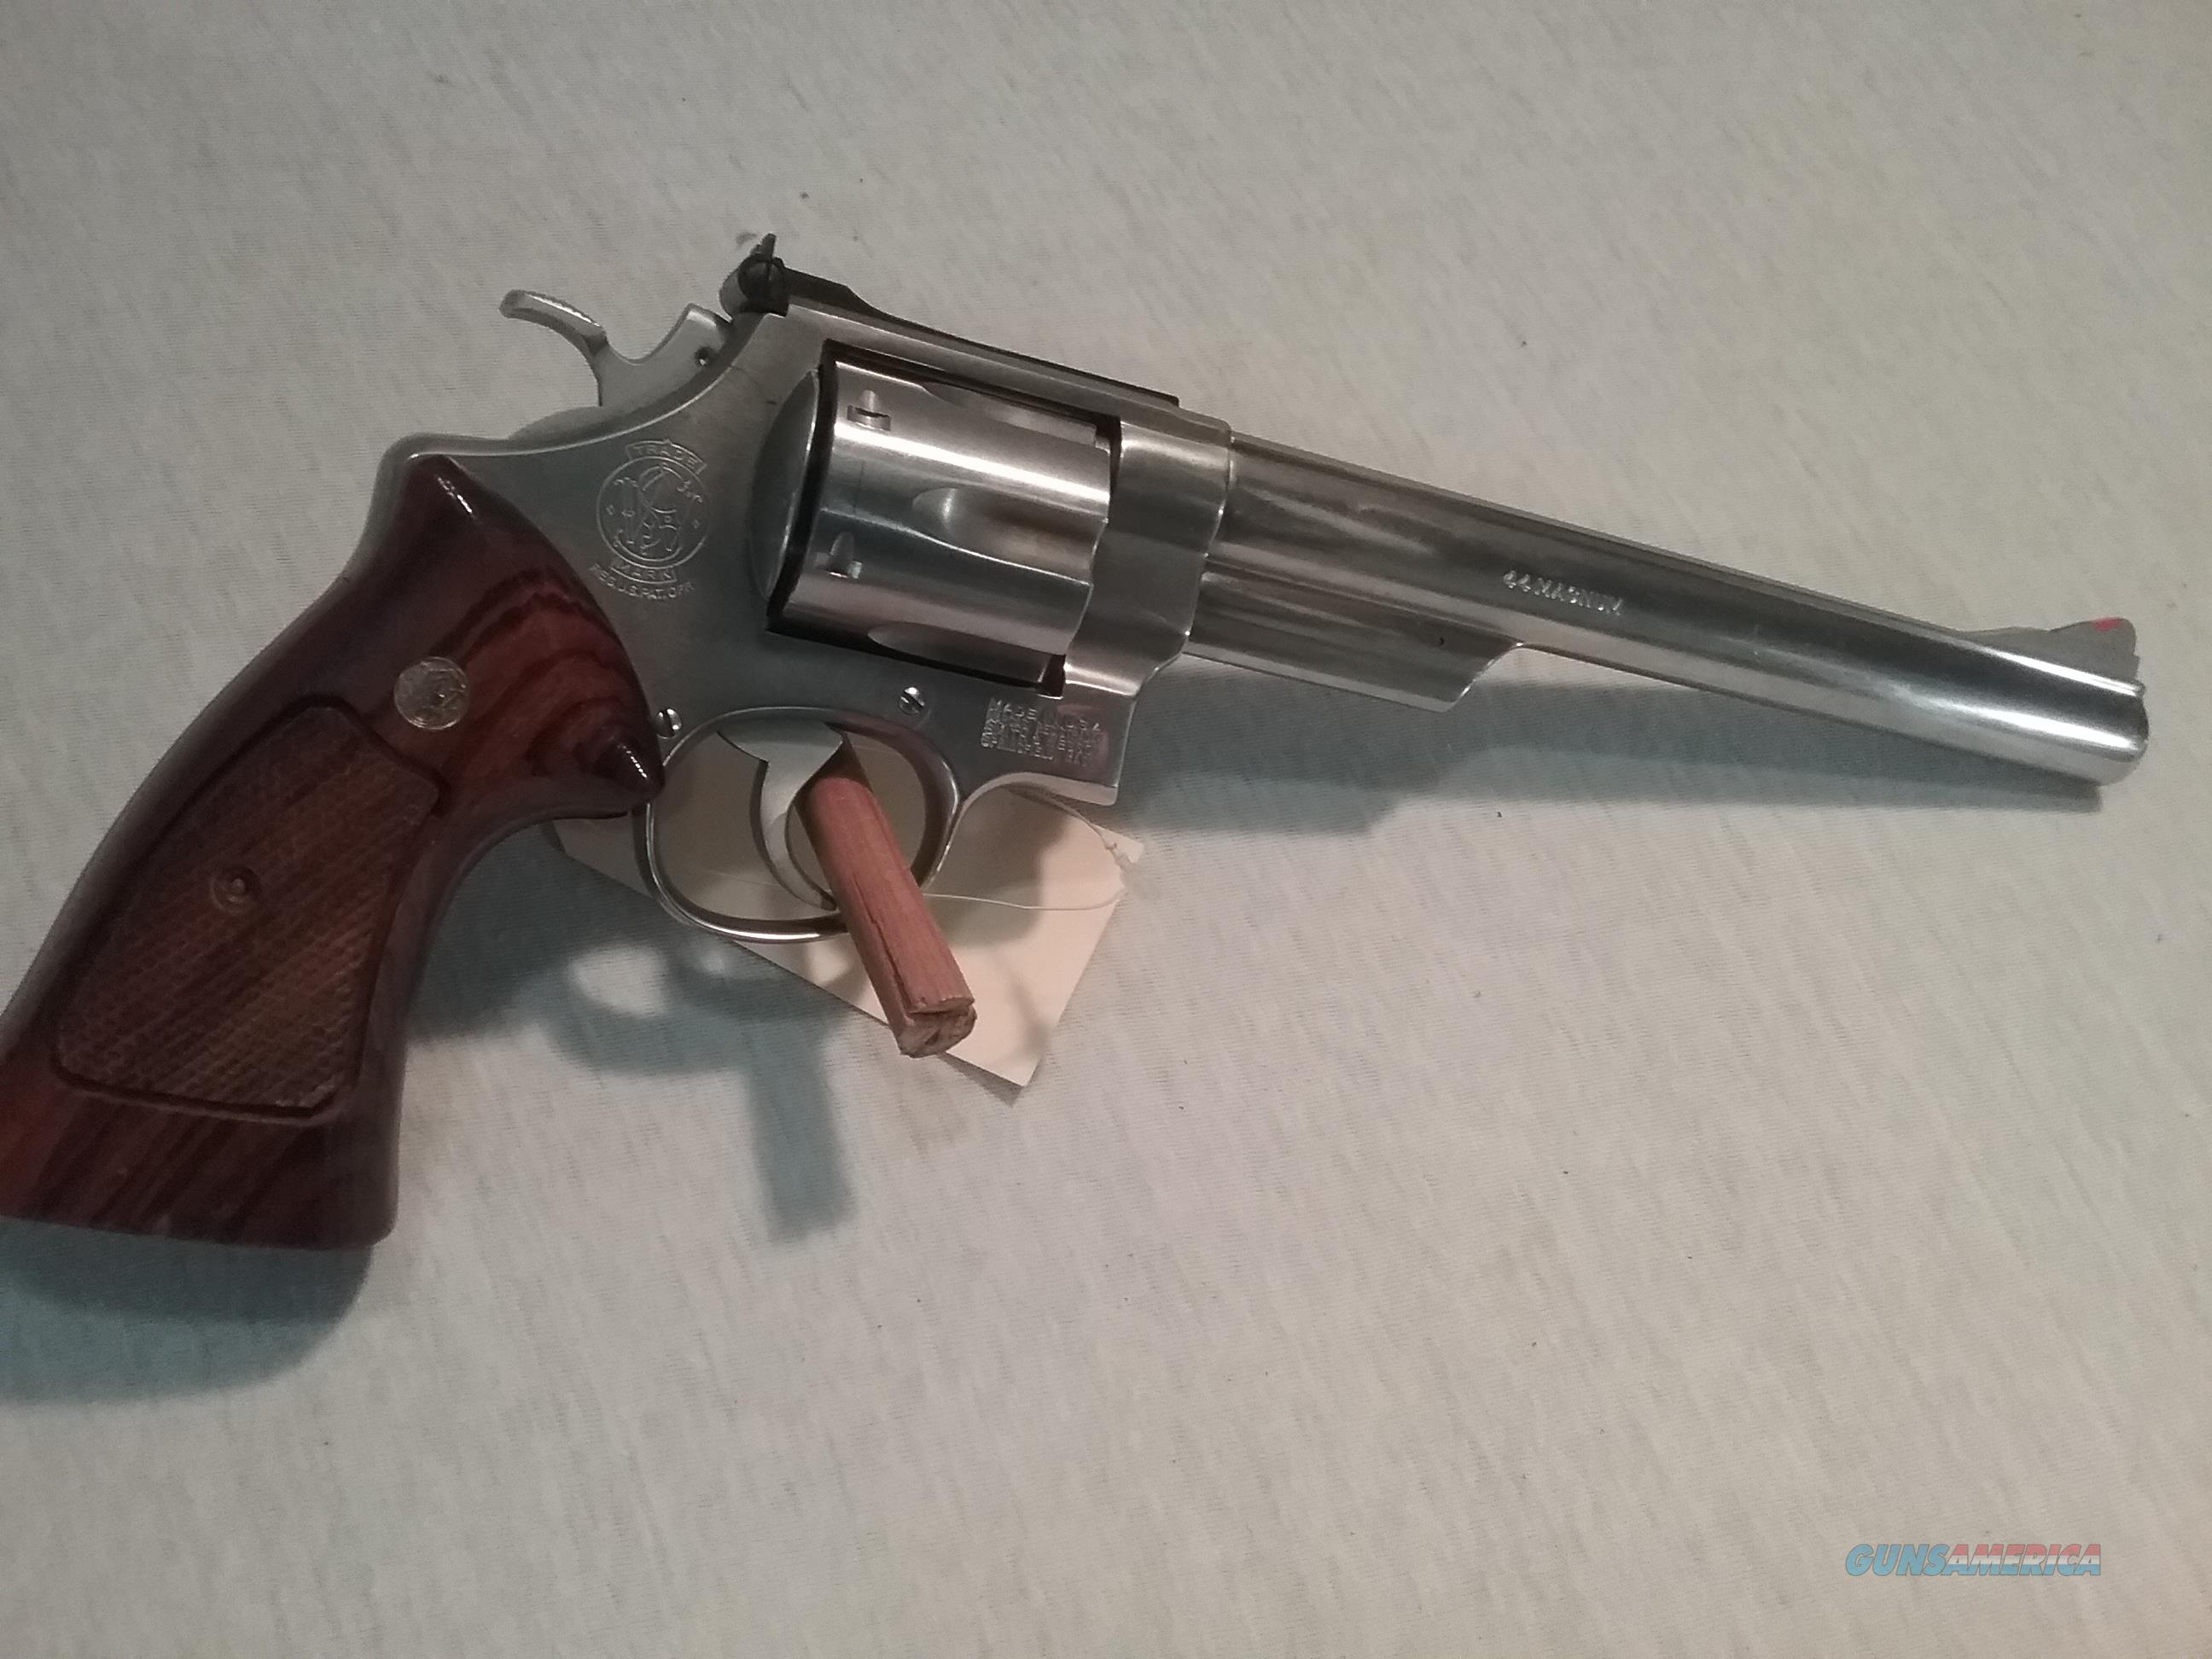 Smith&Wesson 629-1  Guns > Pistols > Smith & Wesson Revolvers > Model 629